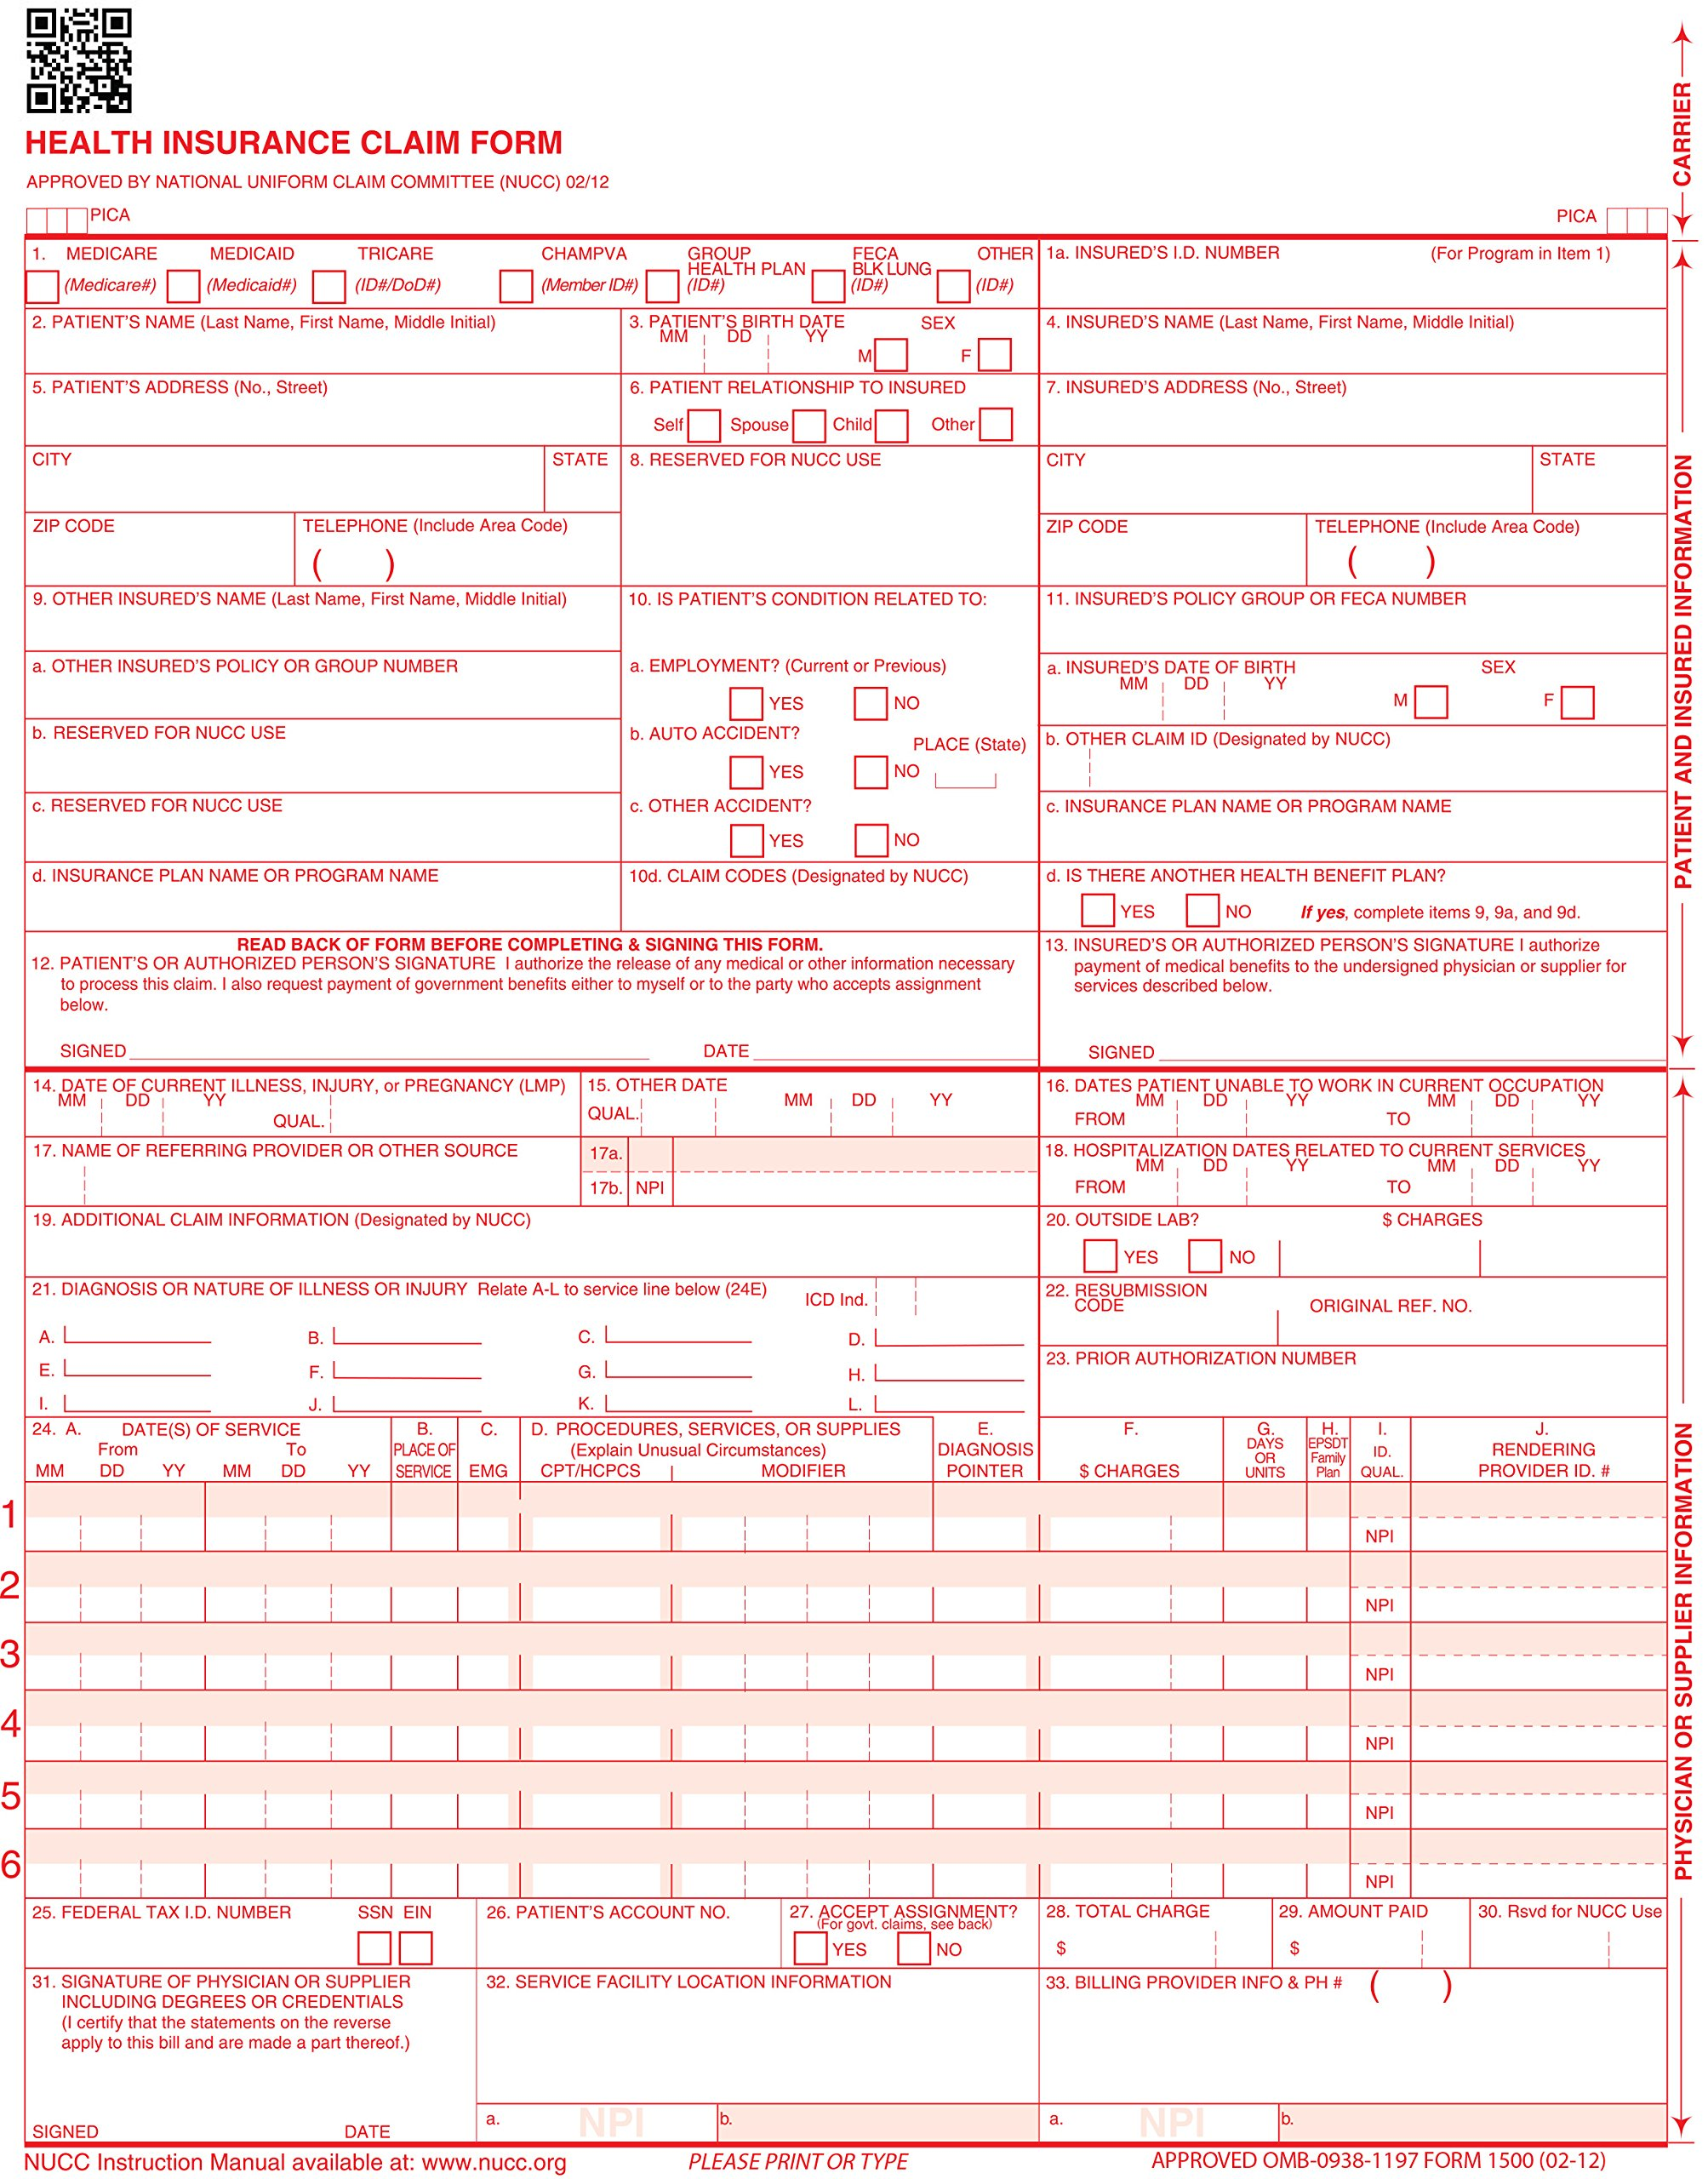 CMS 1500 Claim Forms ''ICD-10'' HCFA (Version 02/12) - Health Insurance, Laser Cut Sheet - 1000 Sheets